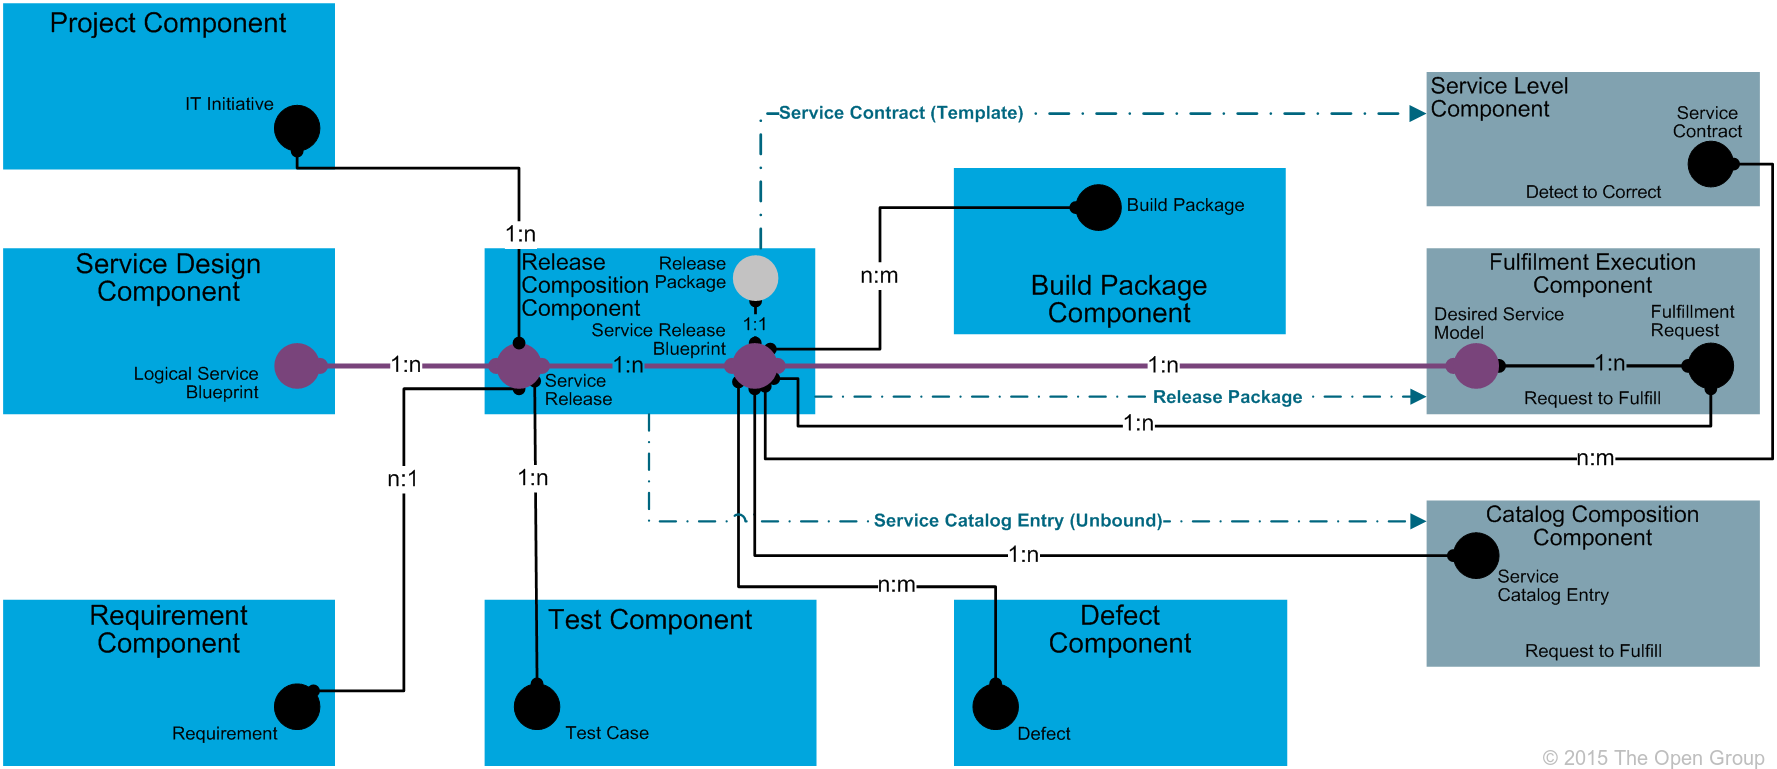 It4it reference architecture version 20 chapter 6 figure 52 release composition functional component level 2 model malvernweather Images